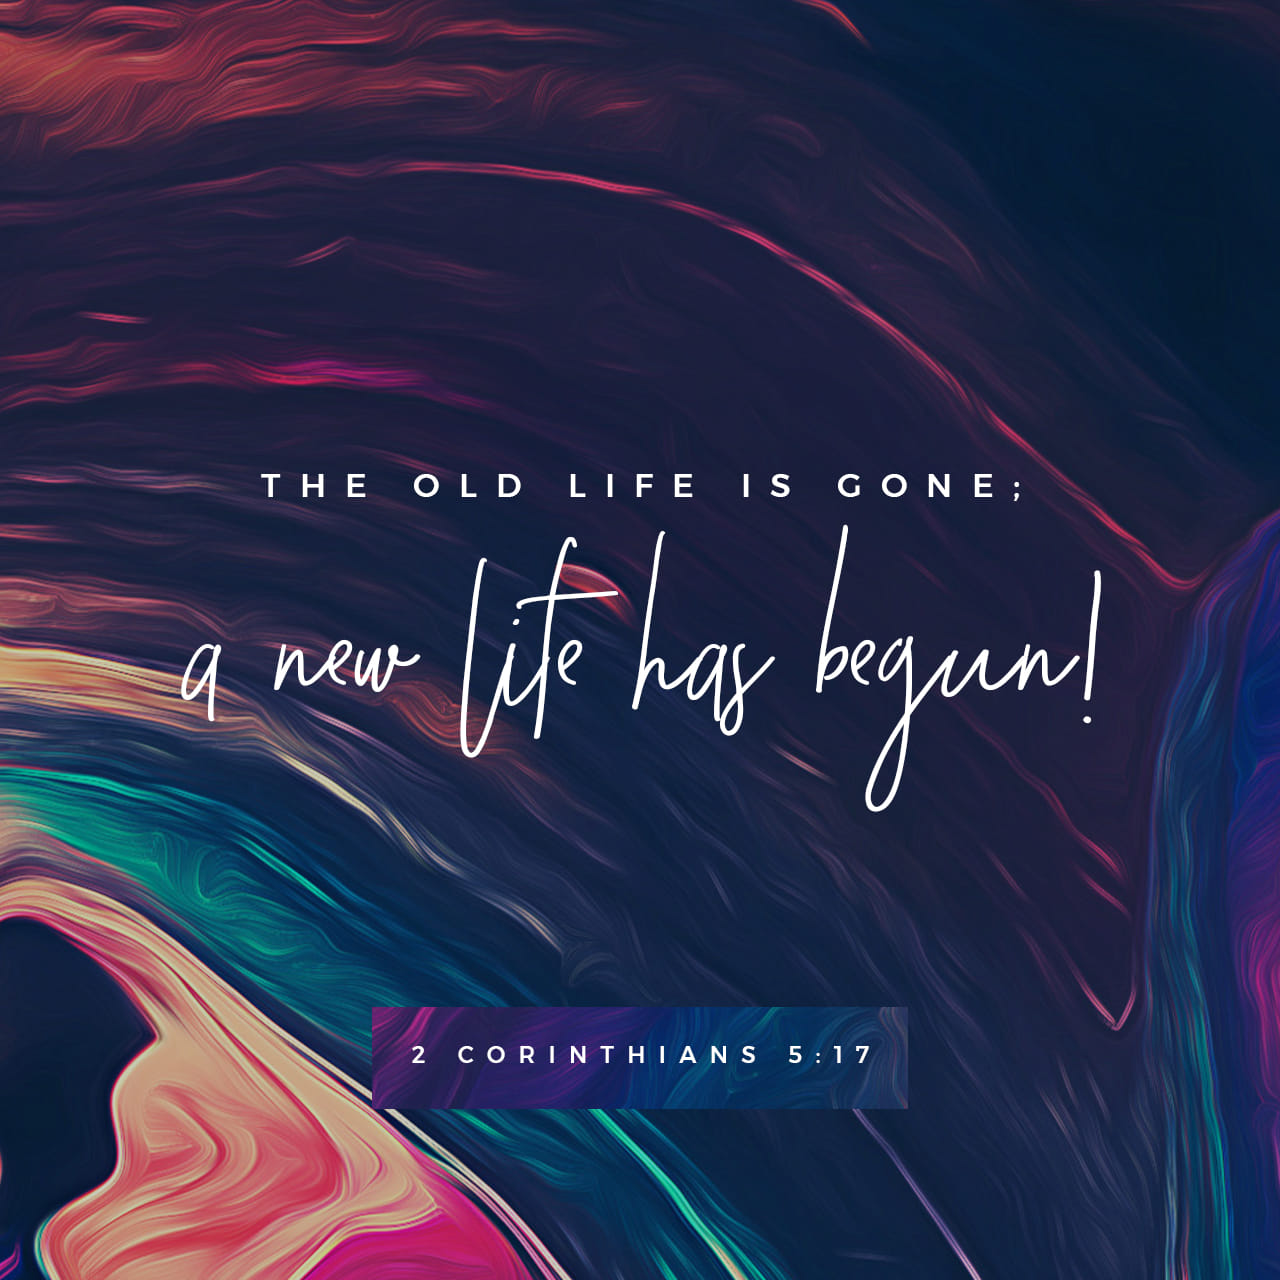 II Corinthians 5:17-21 Therefore, if anyone is in Christ, he is a new creation; old things have passed away; behold, all things have become new. Now all things are of God, who has reconciled us to Himself through Jesus Chri | New King James Version (NKJV)